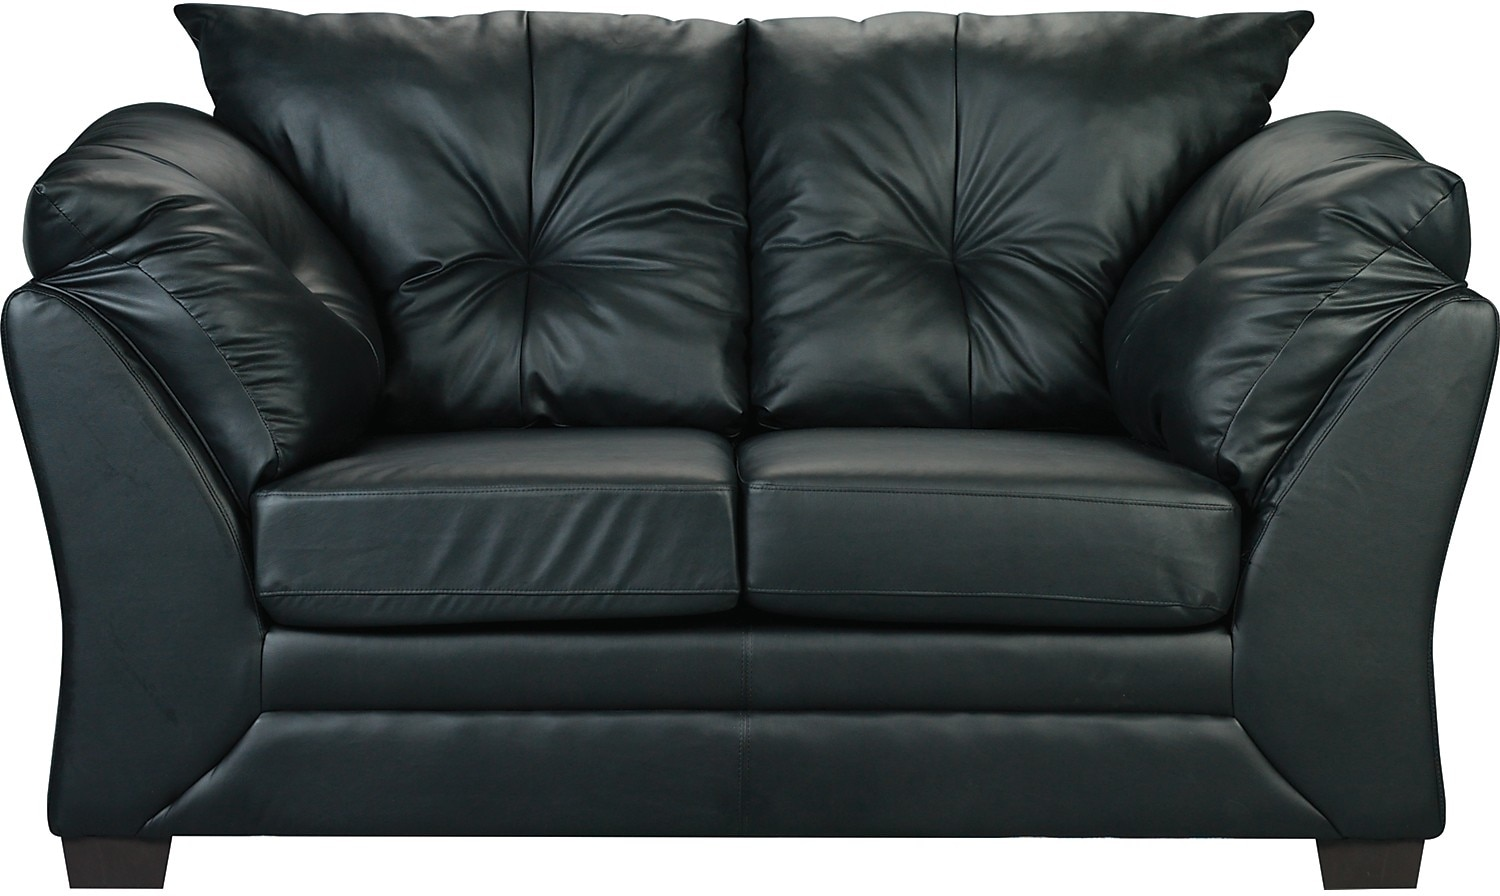 Living Room Furniture - Max Faux Leather Loveseat - Black